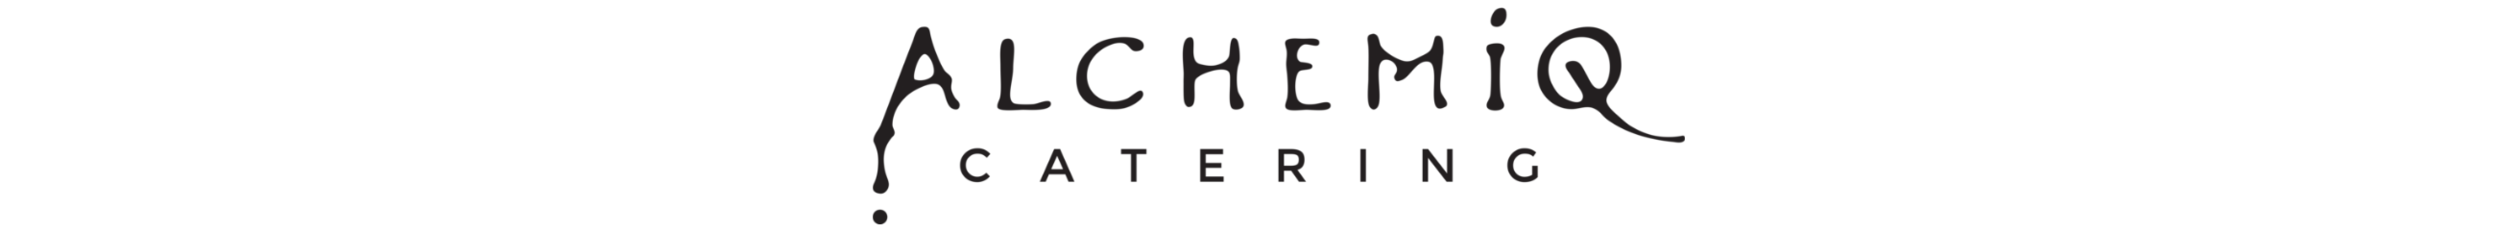 ALCHEMIQ Catering Logo.png